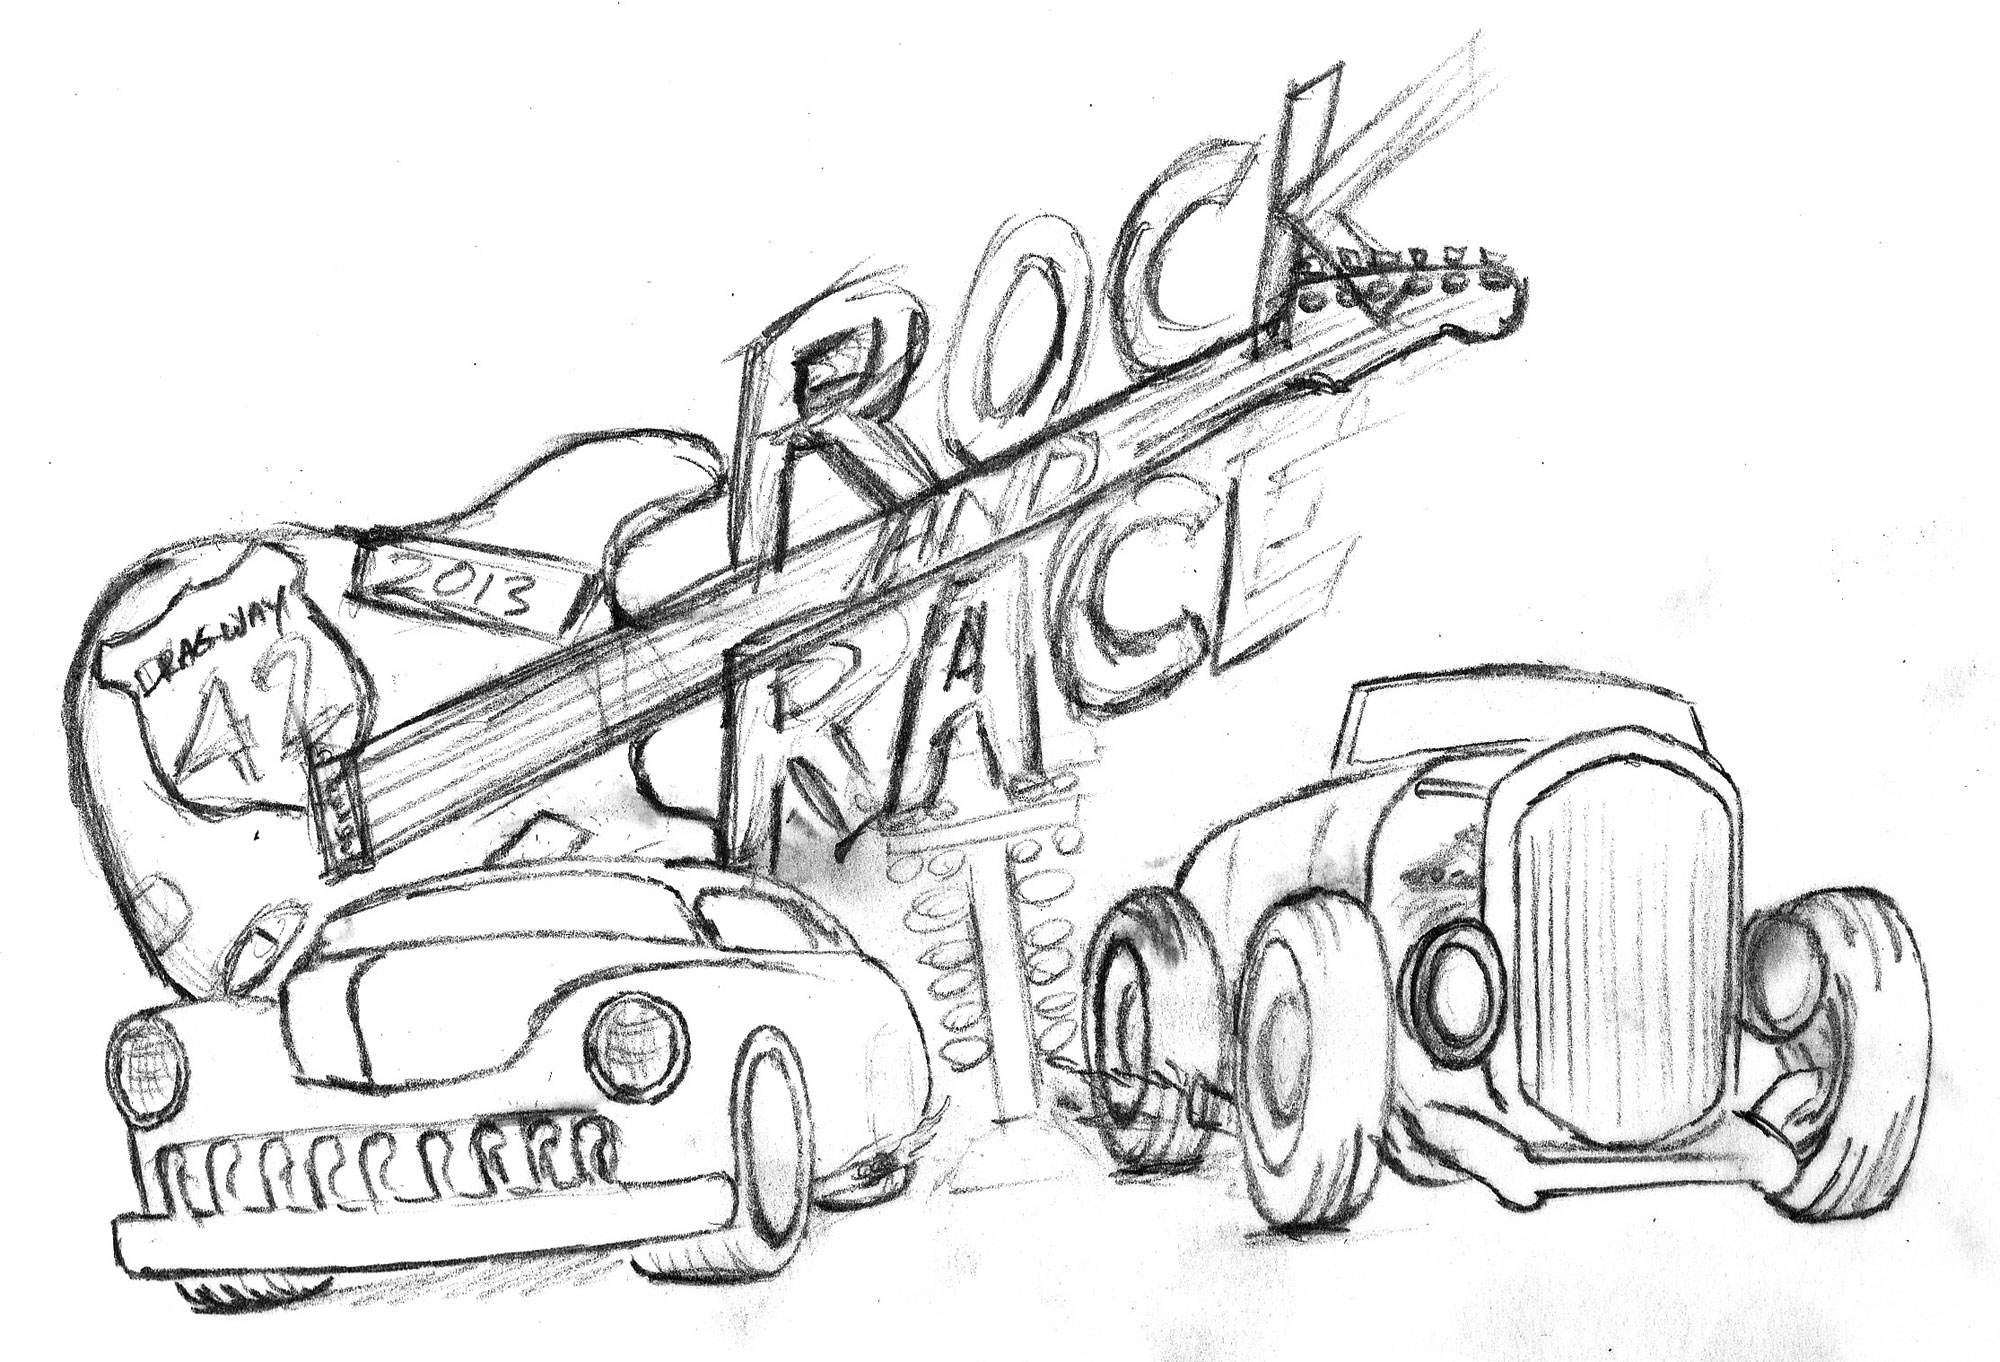 Original Sketch for Dragway 42 Rock and Race logo.